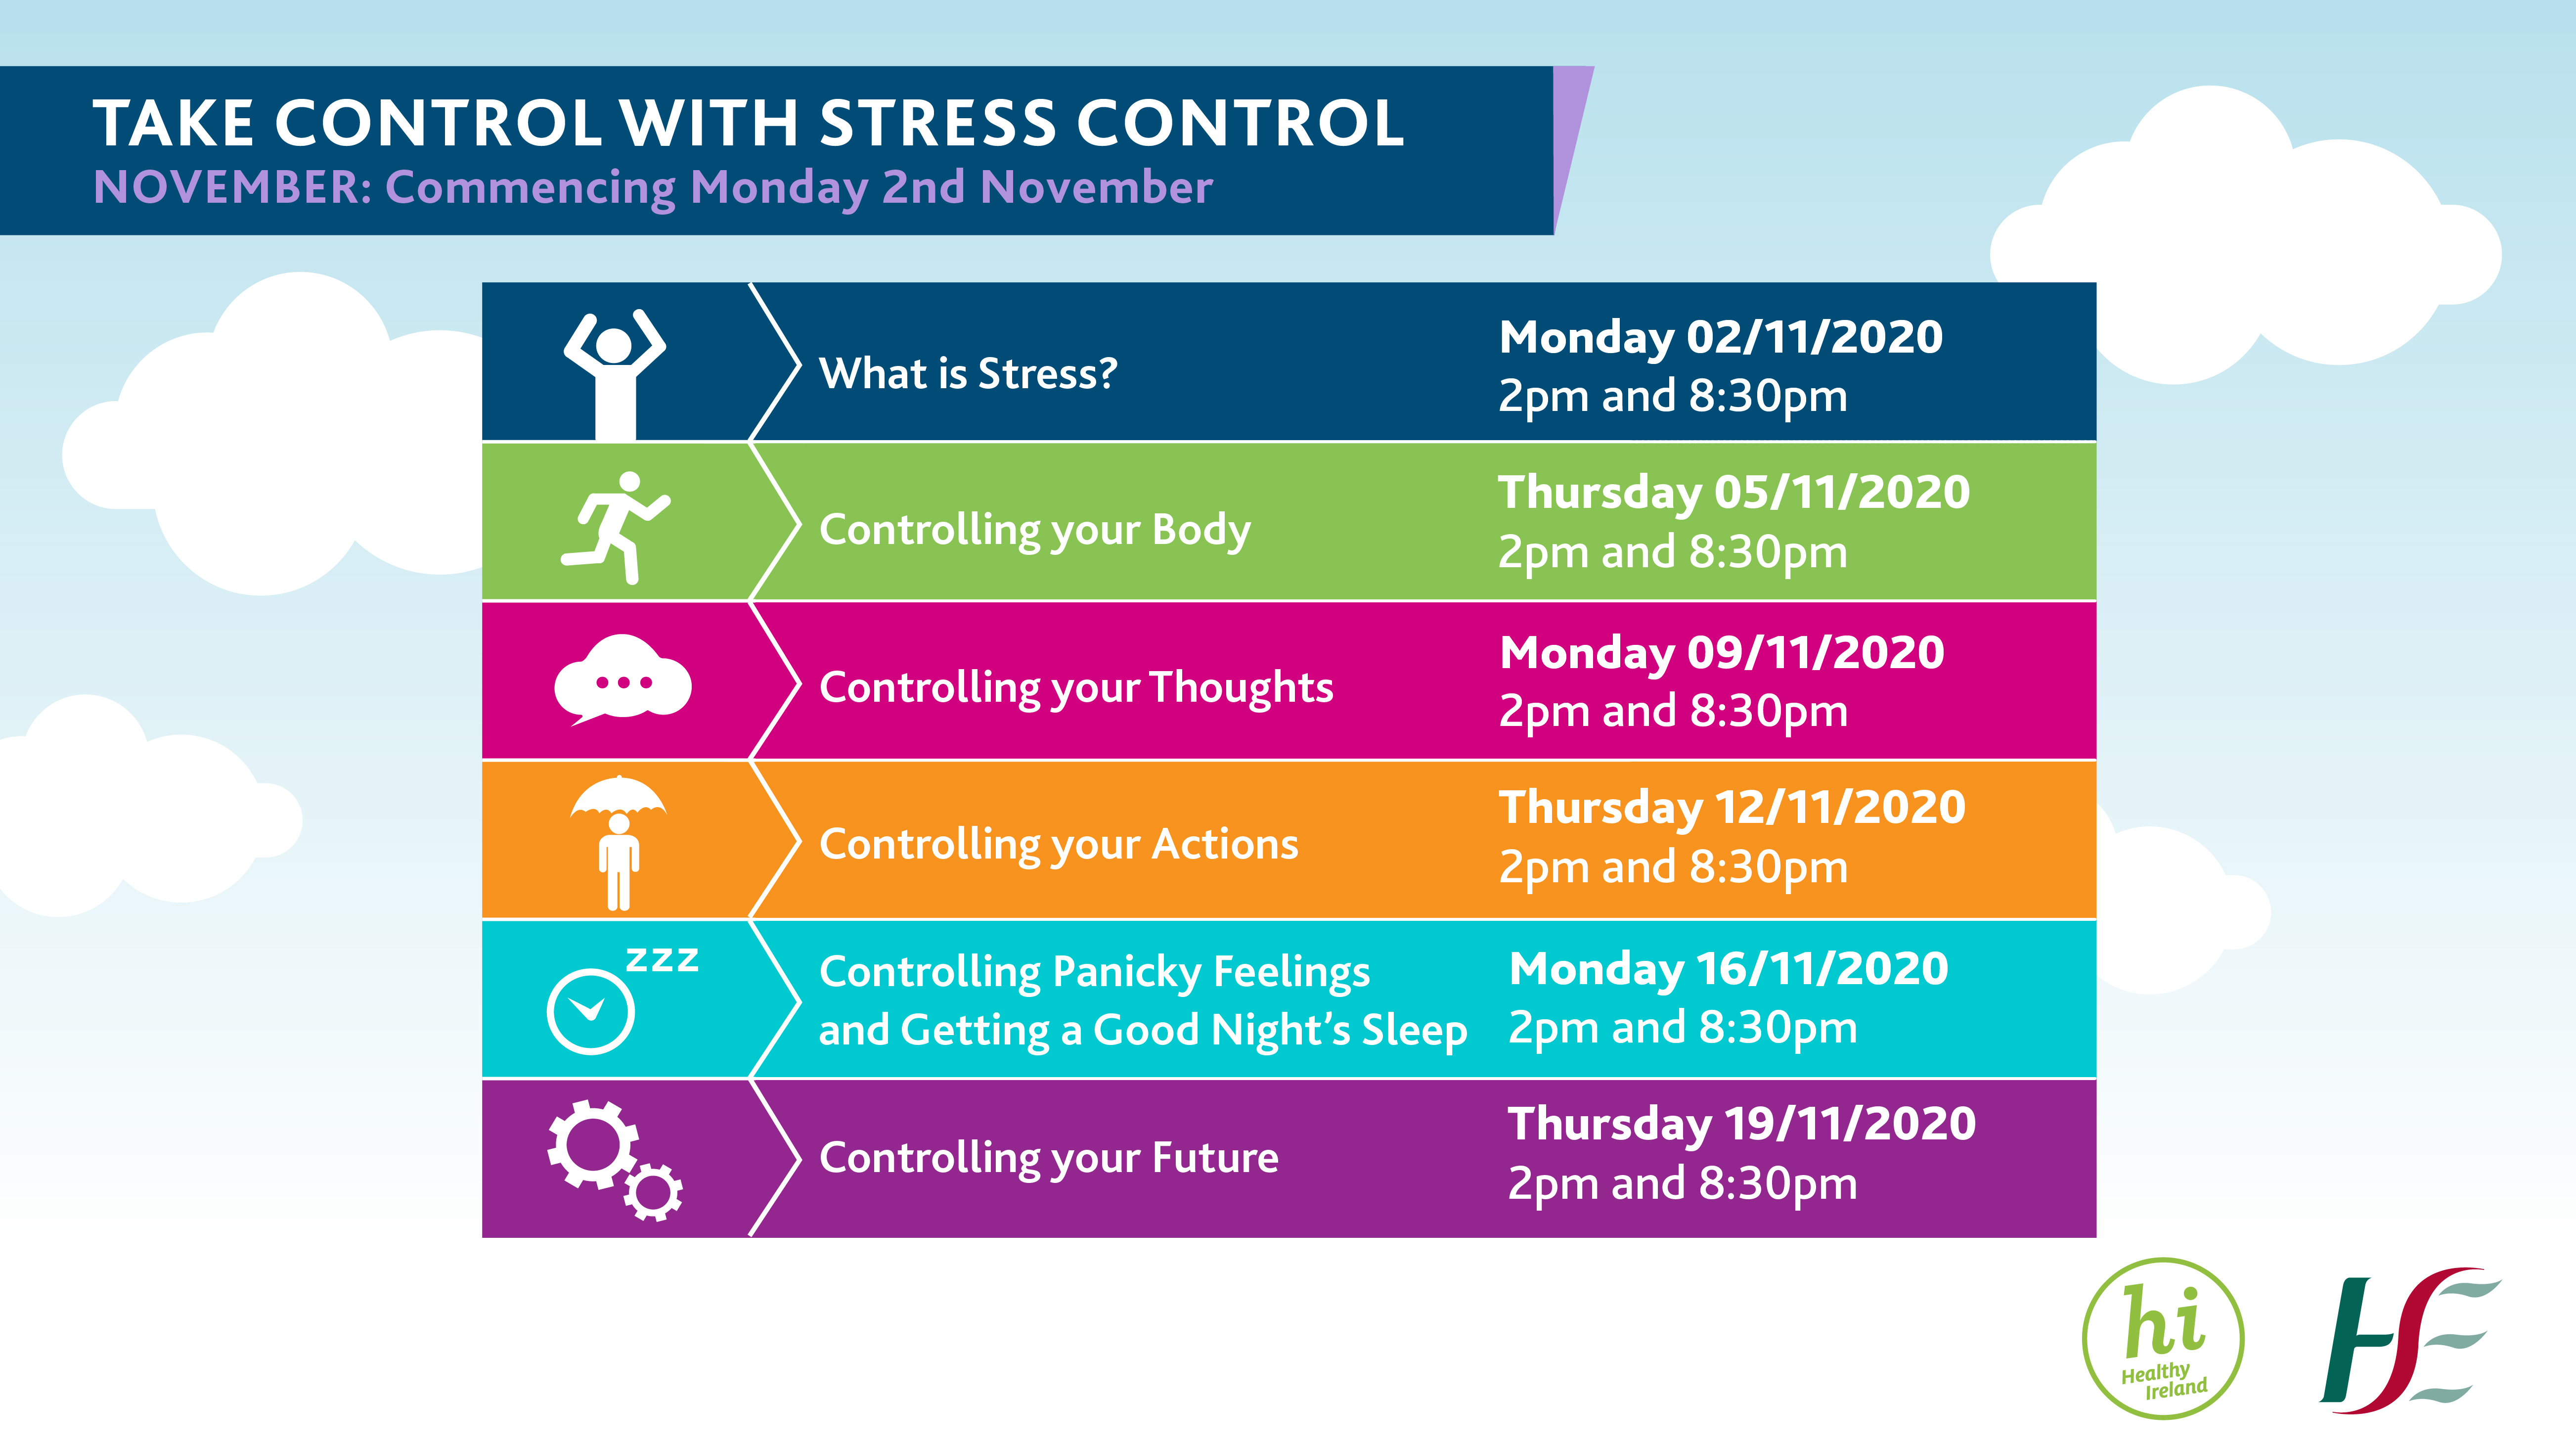 Take Control With Stress Control